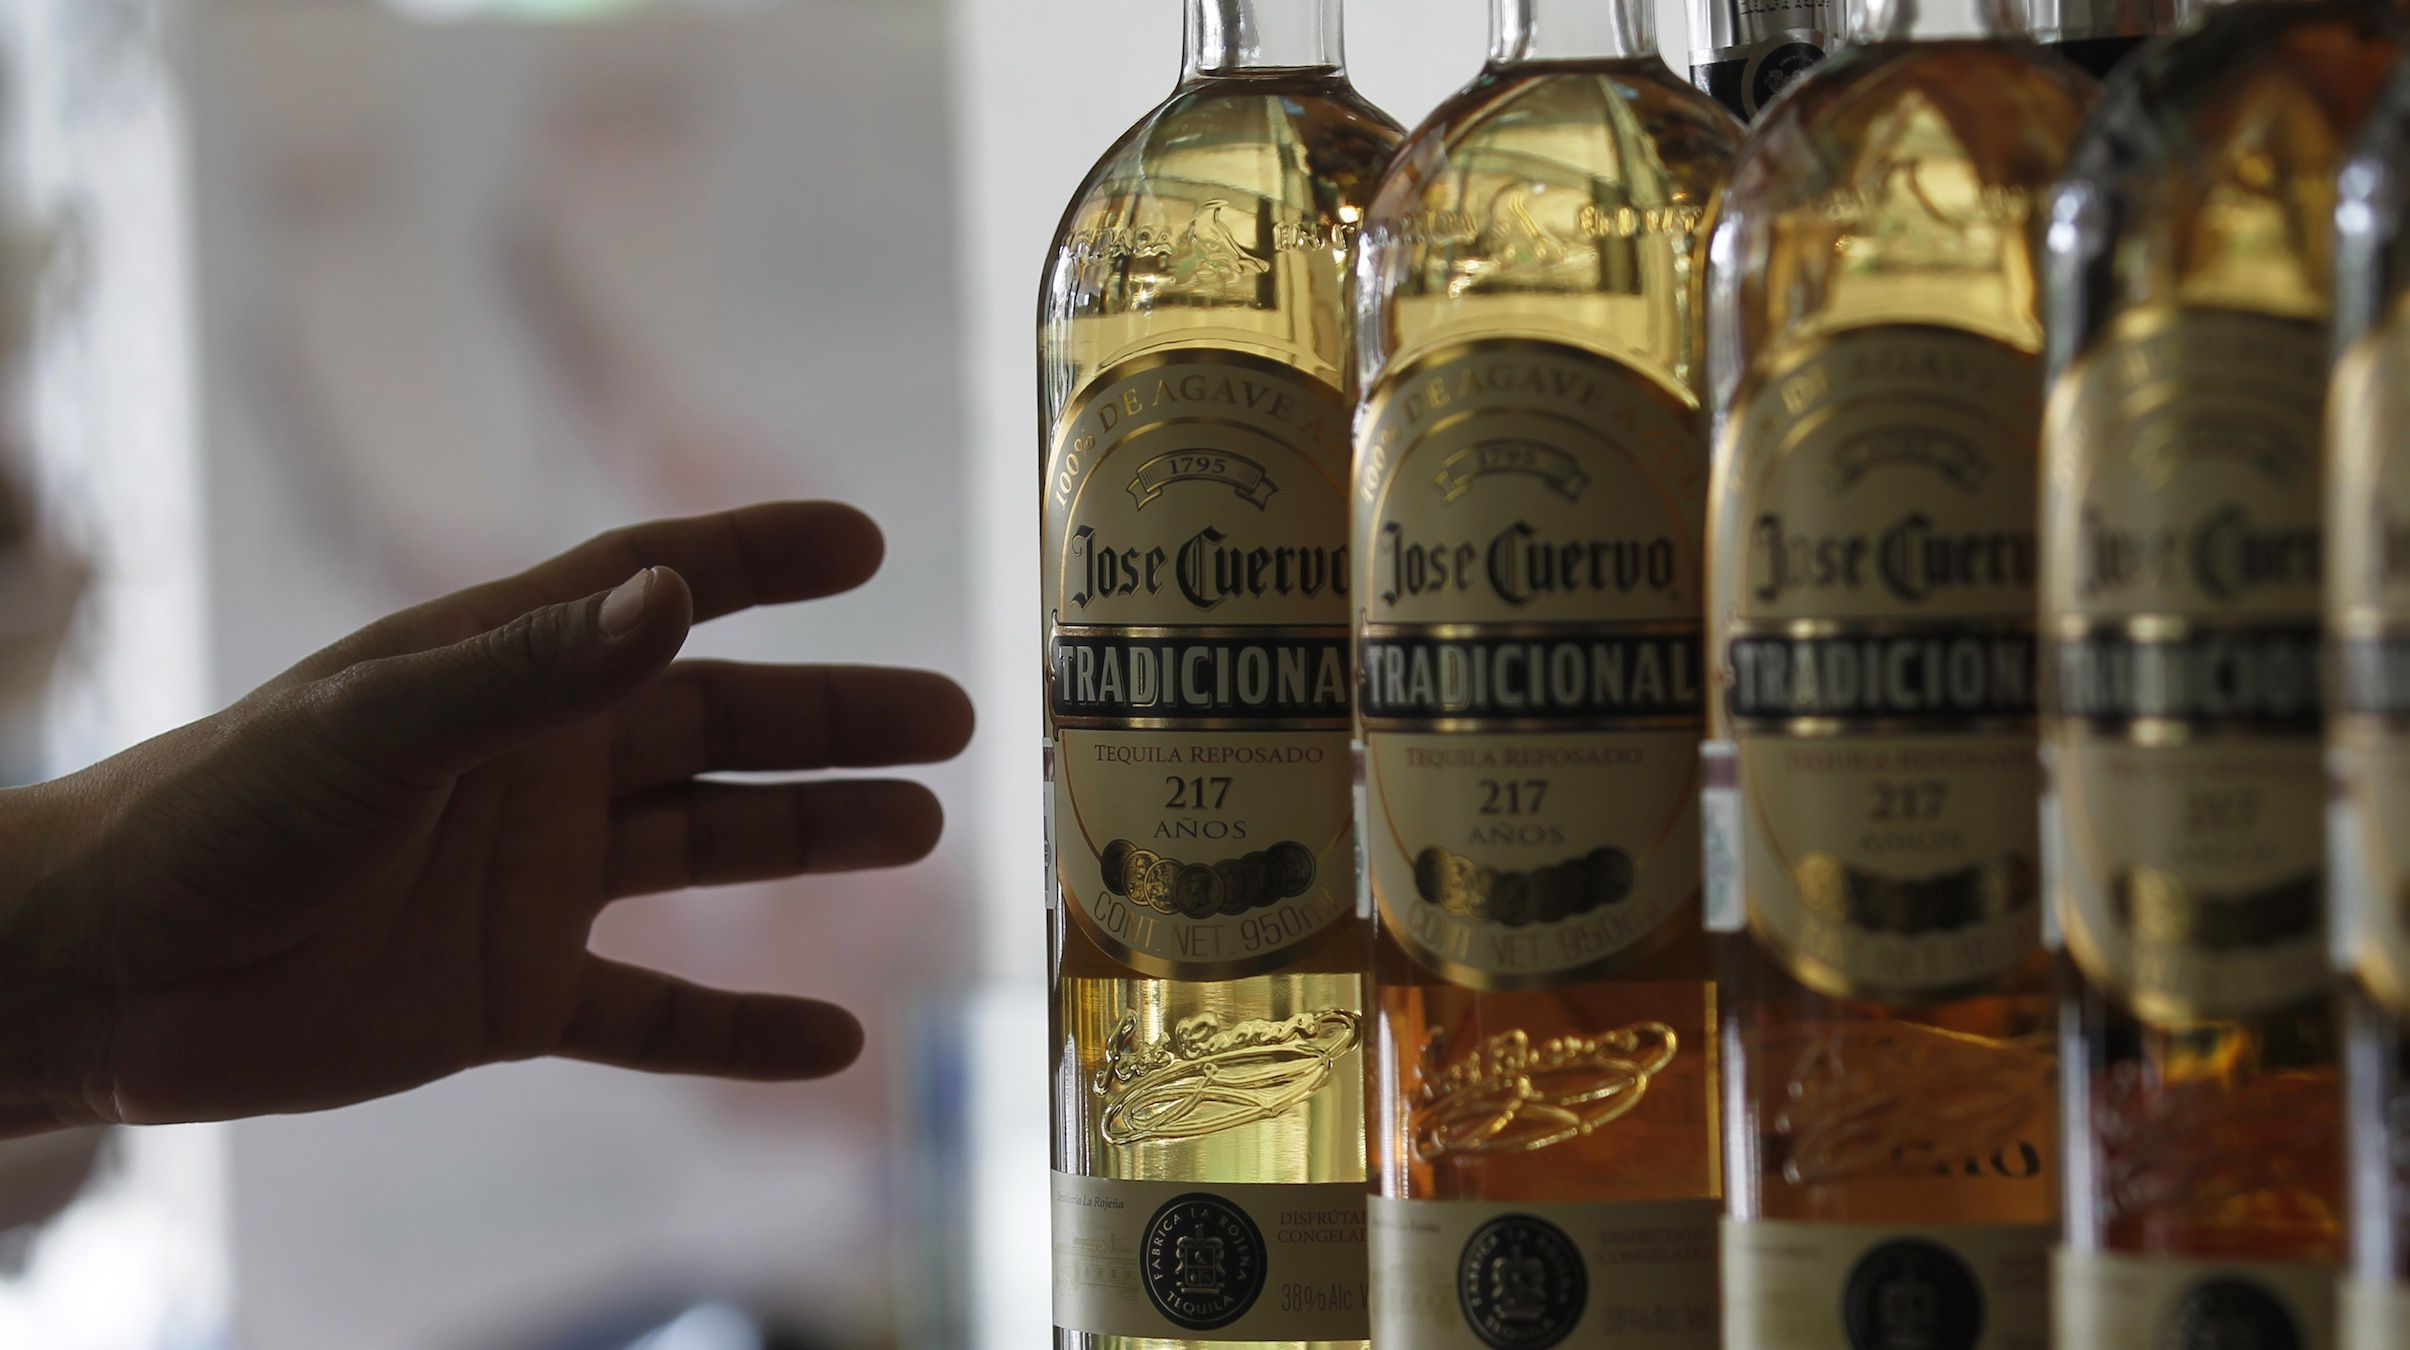 Jose Cuervo is making plans for an IPO in February